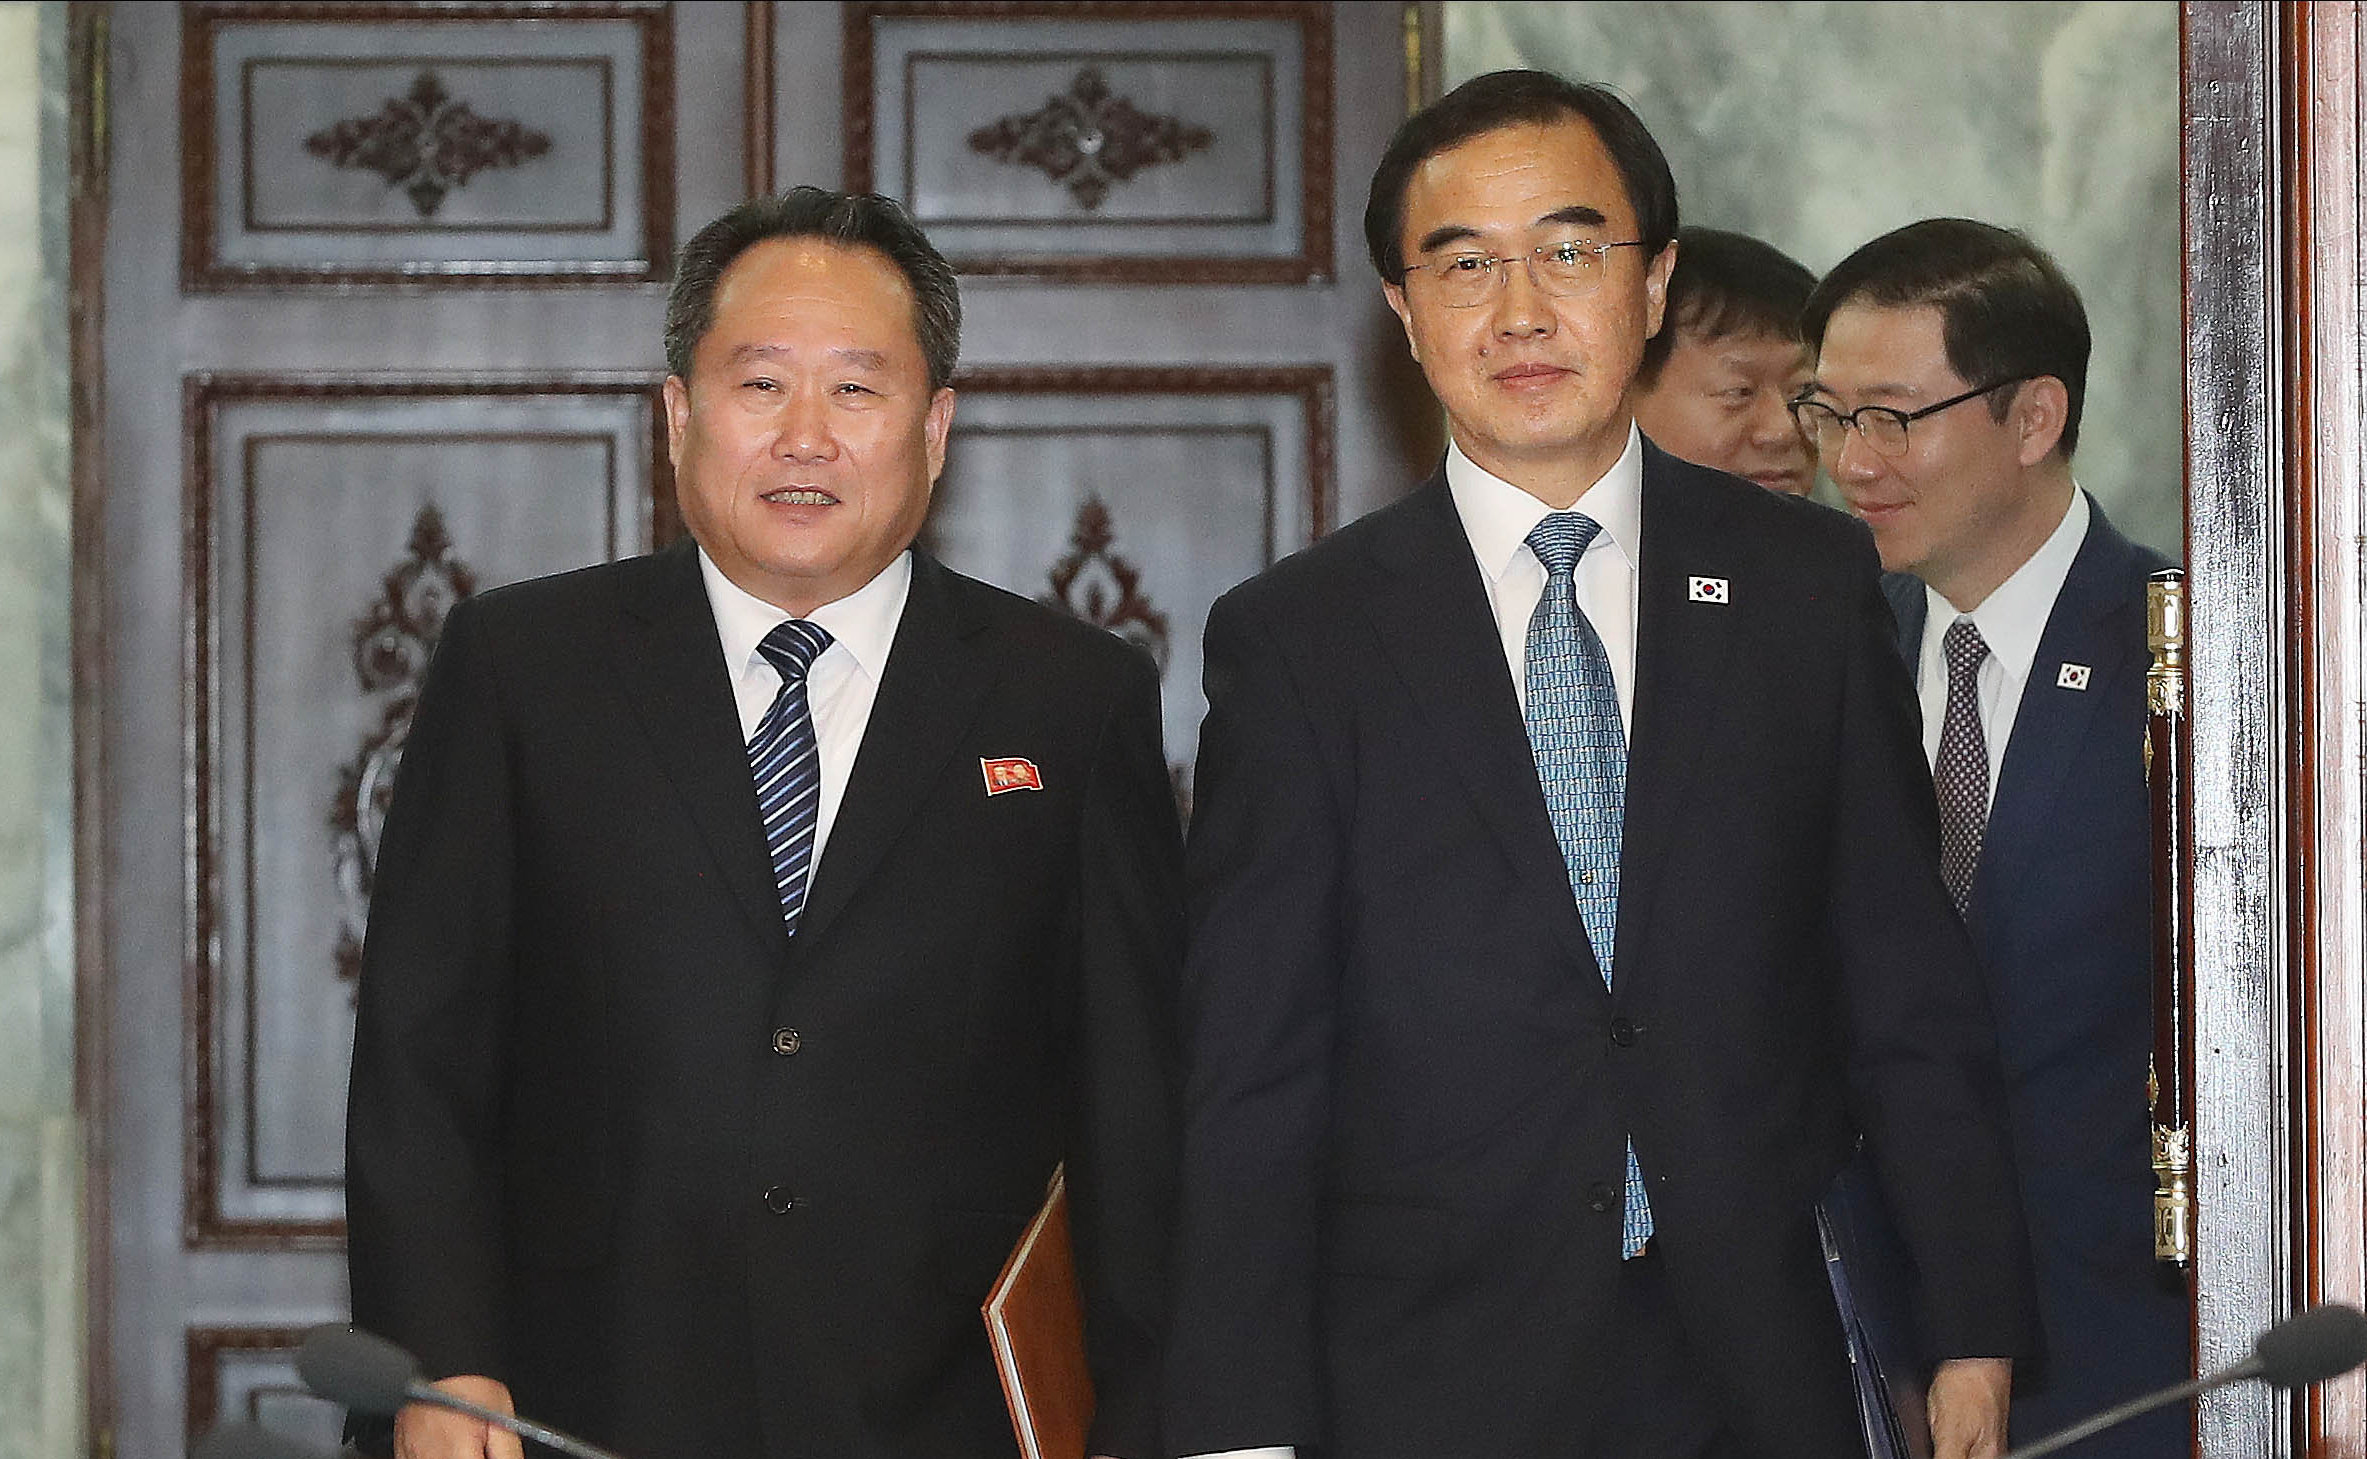 South Korean unification minister Cho Myoung-Gyon, right, and North Korean delegation head Ri Son-Gwon. Photograph: Getty